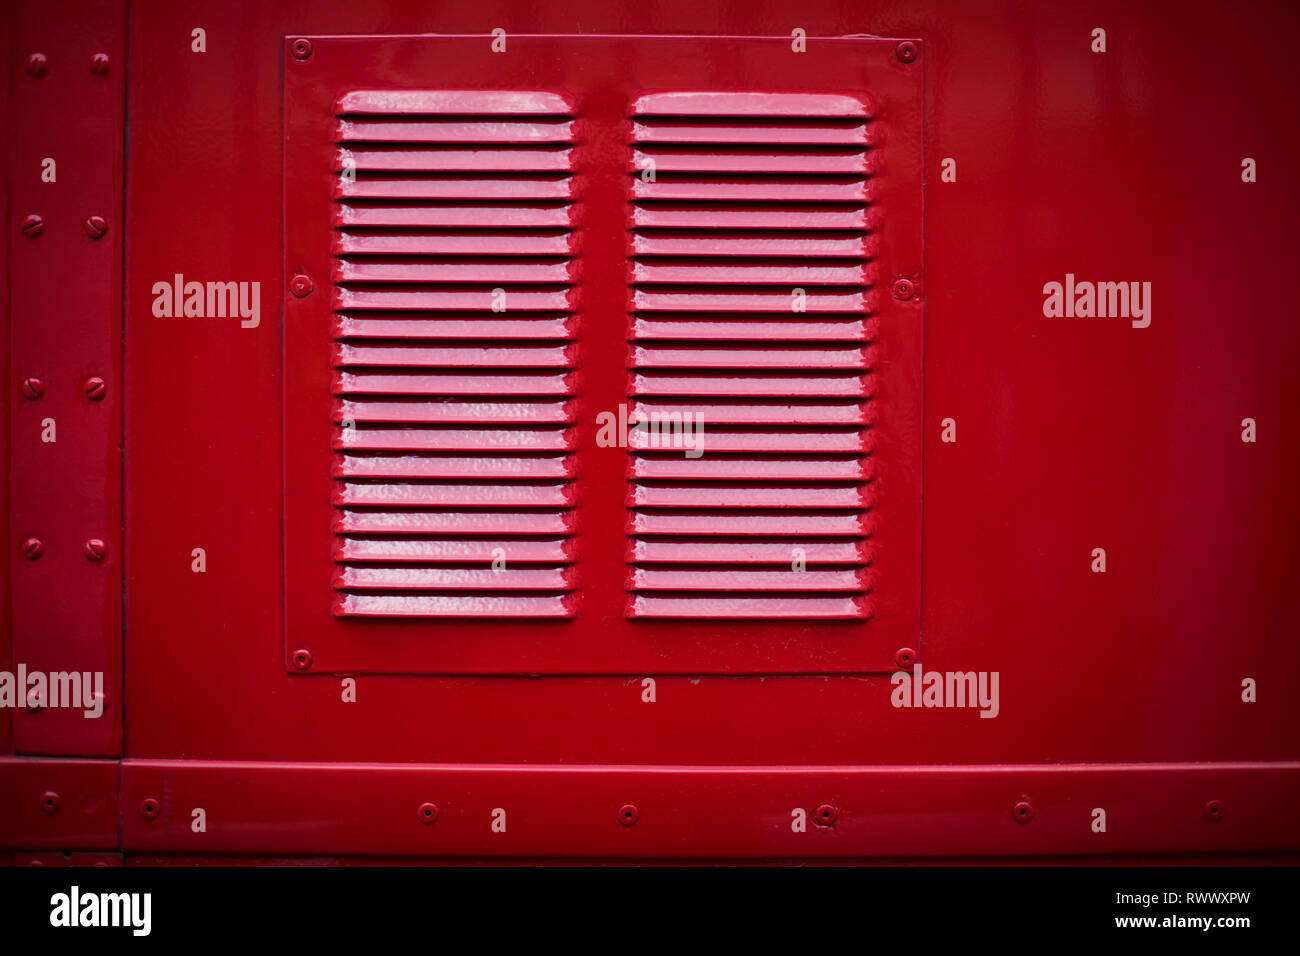 Color image of the air vents of a vintage red bus Stock